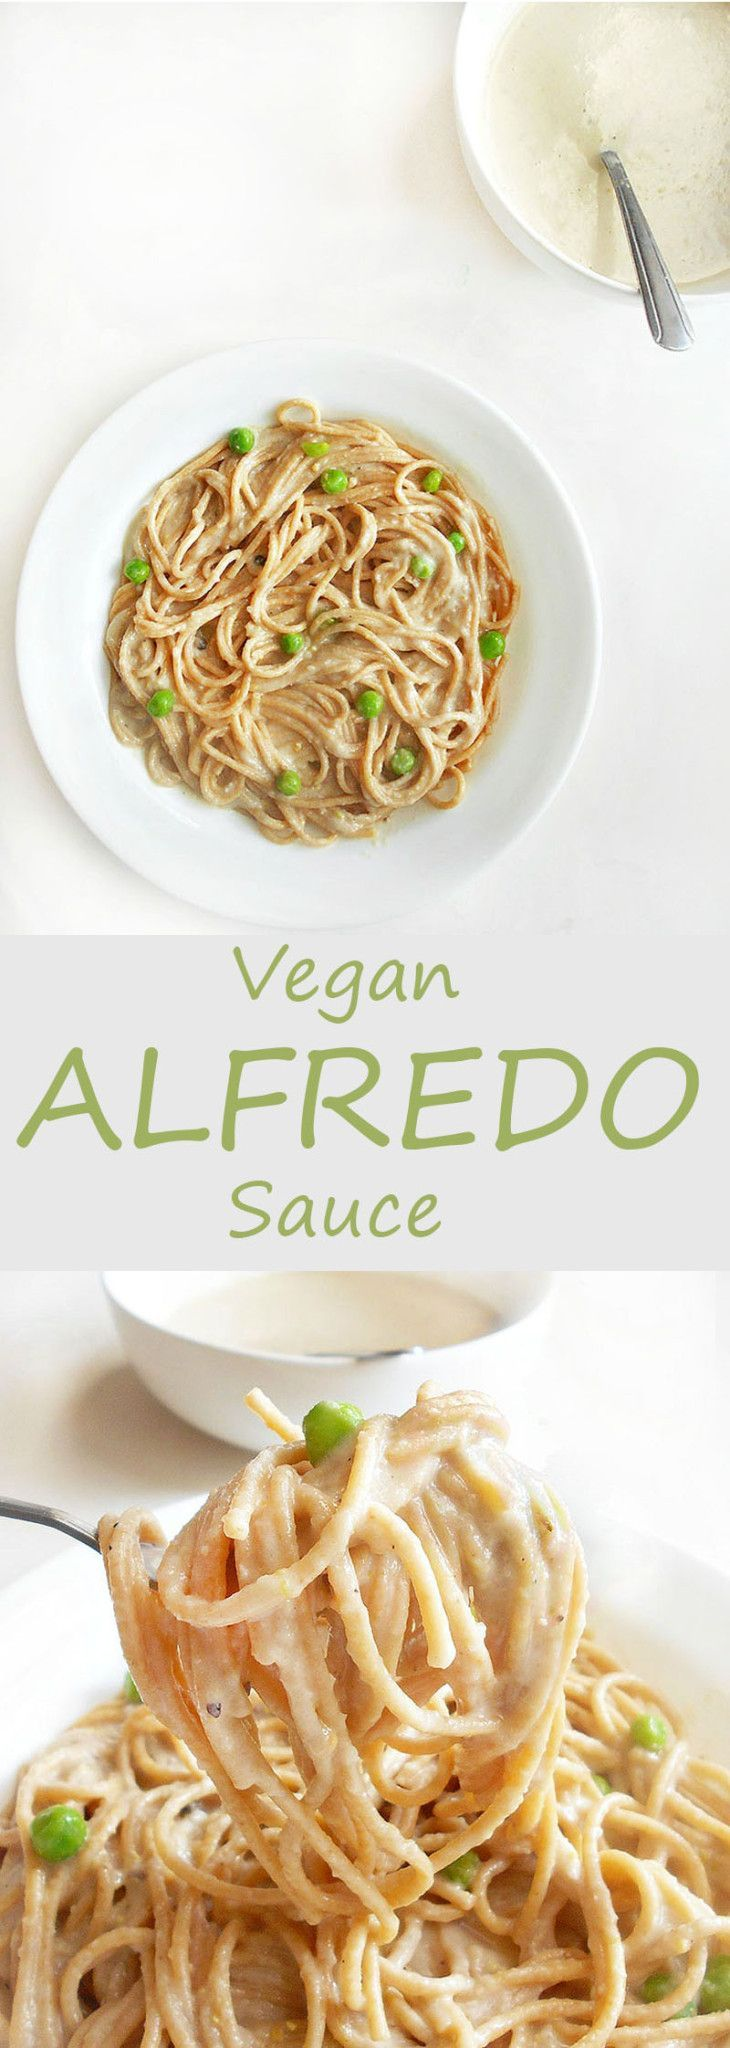 The BEST Vegan Alfredo Sauce Recipe - Perfect for any spaghetti recipe. Vegan meals have never been simpler or more delicious. This recipe uses Almond milk, cauliflower and nutritional yeast. This is a 30 minute recipe and is lo carb